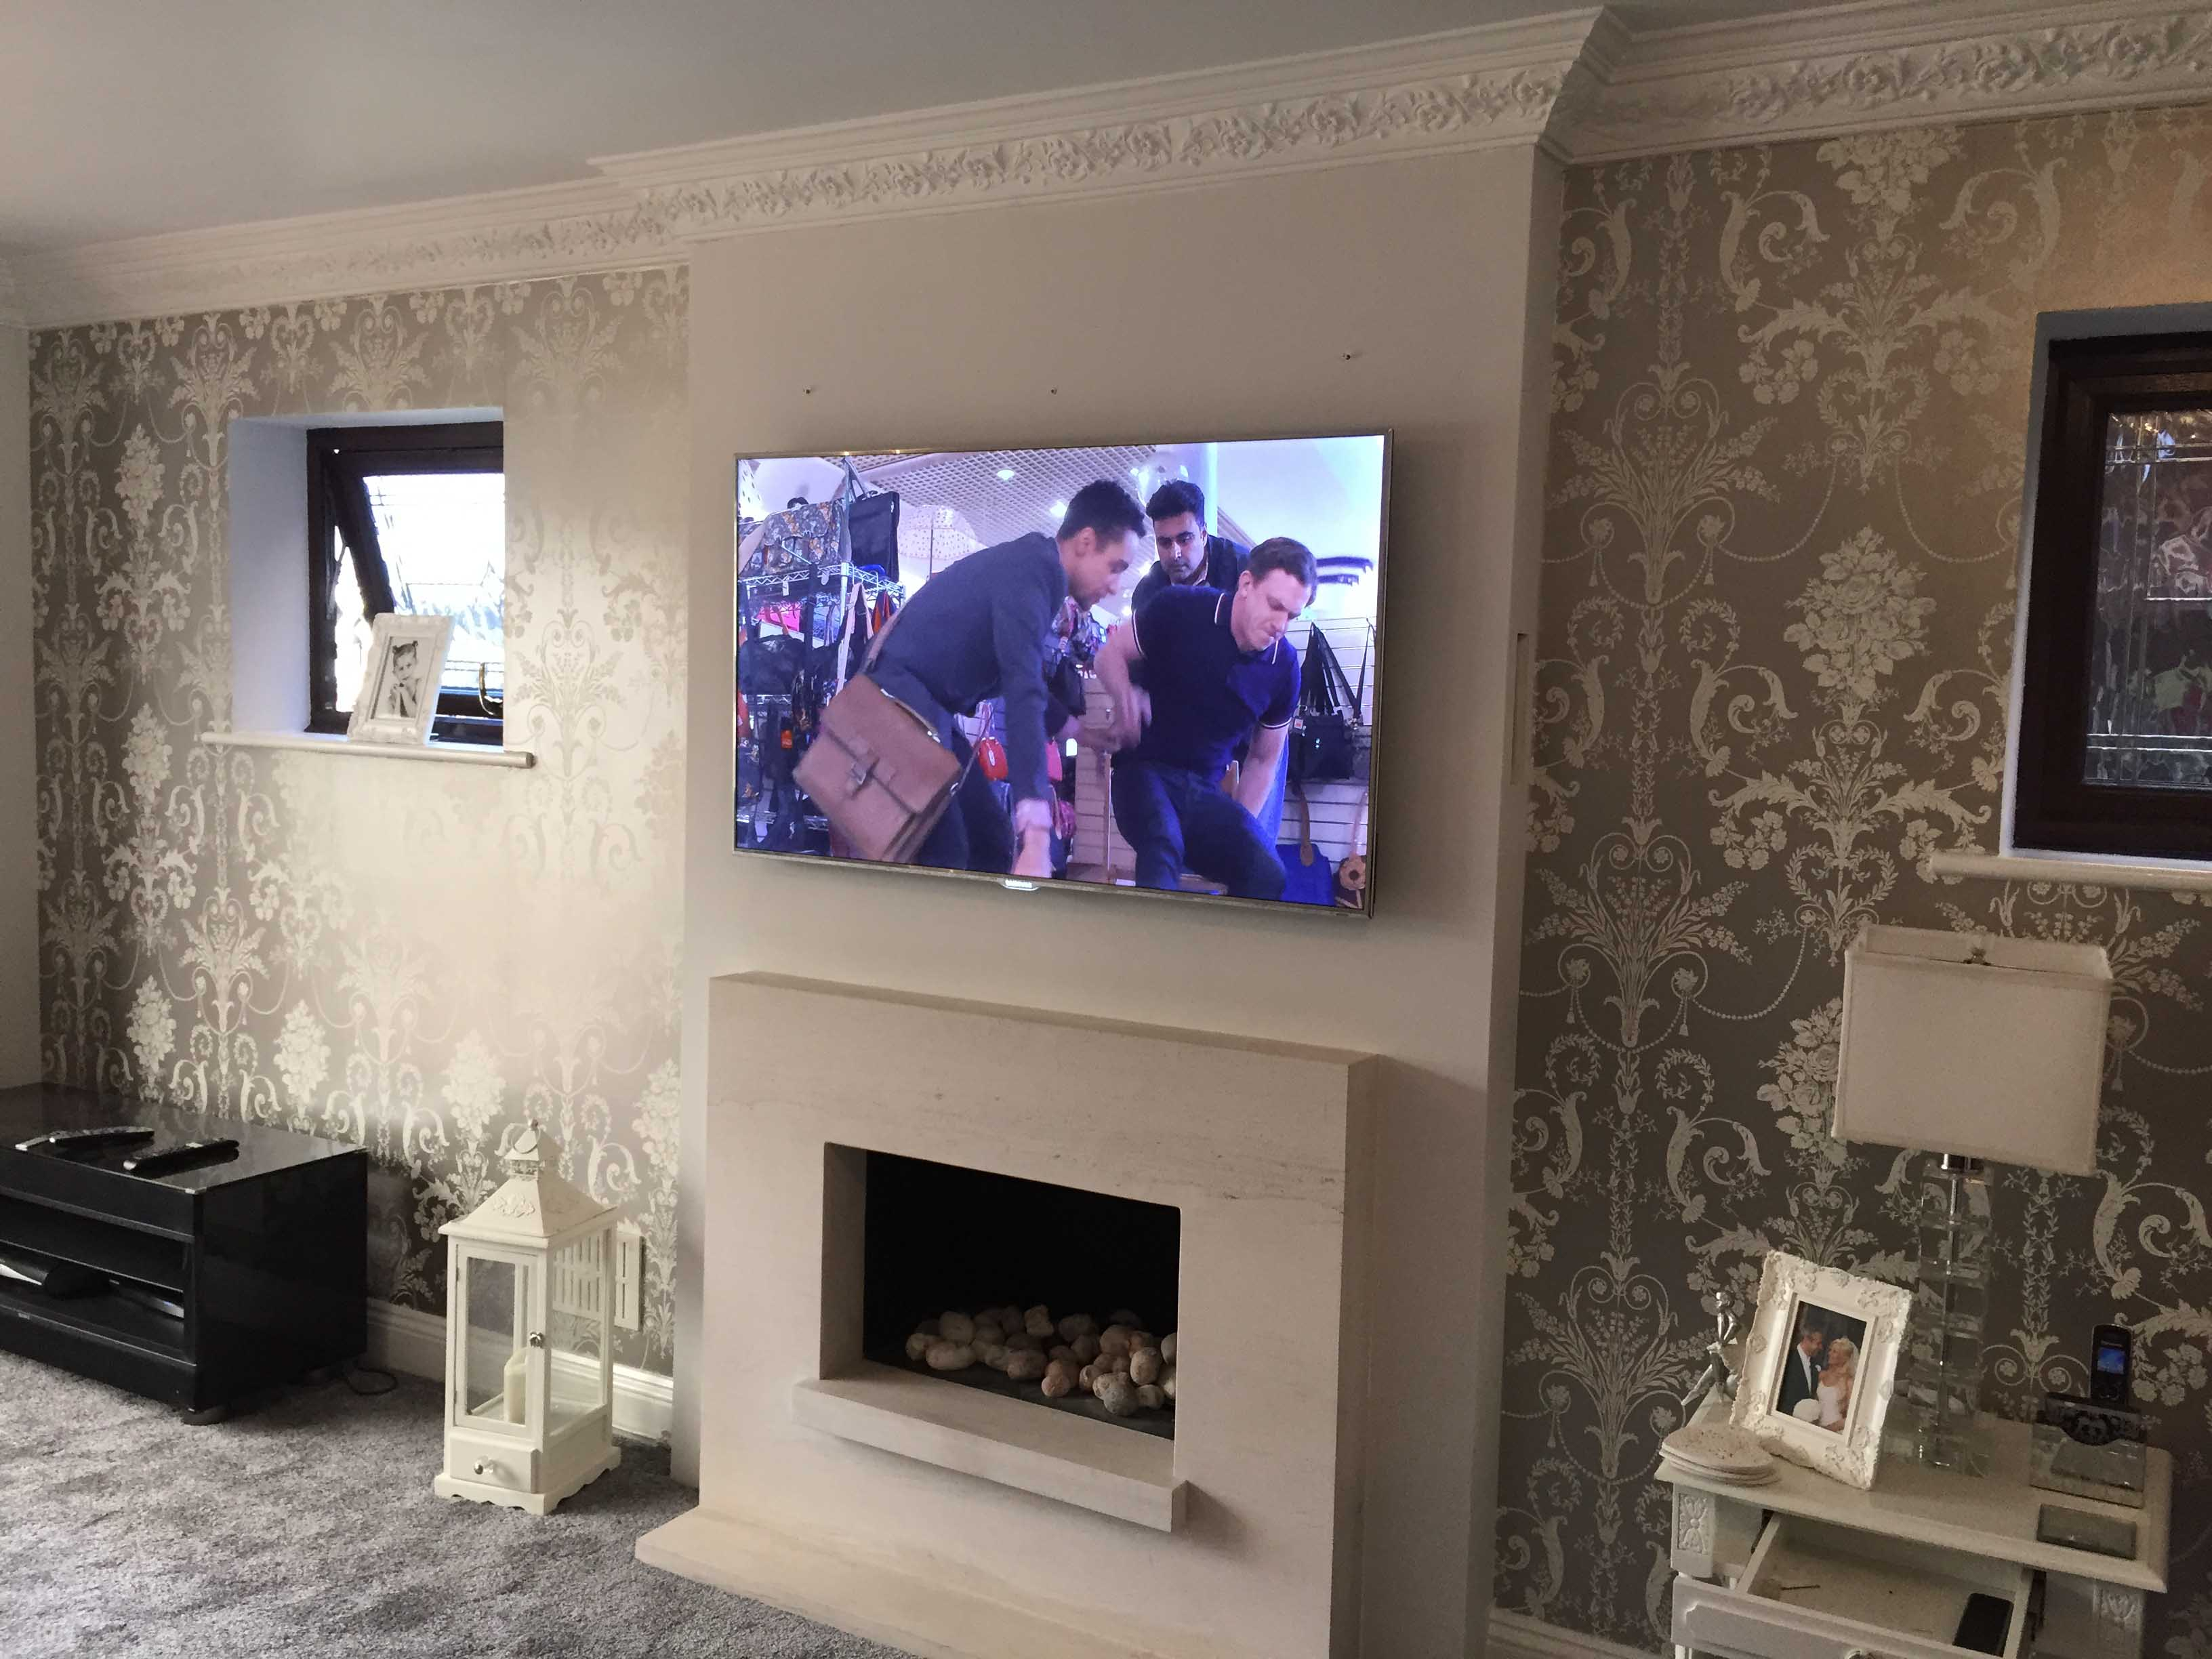 Should a TV be mounted over a fireplace?